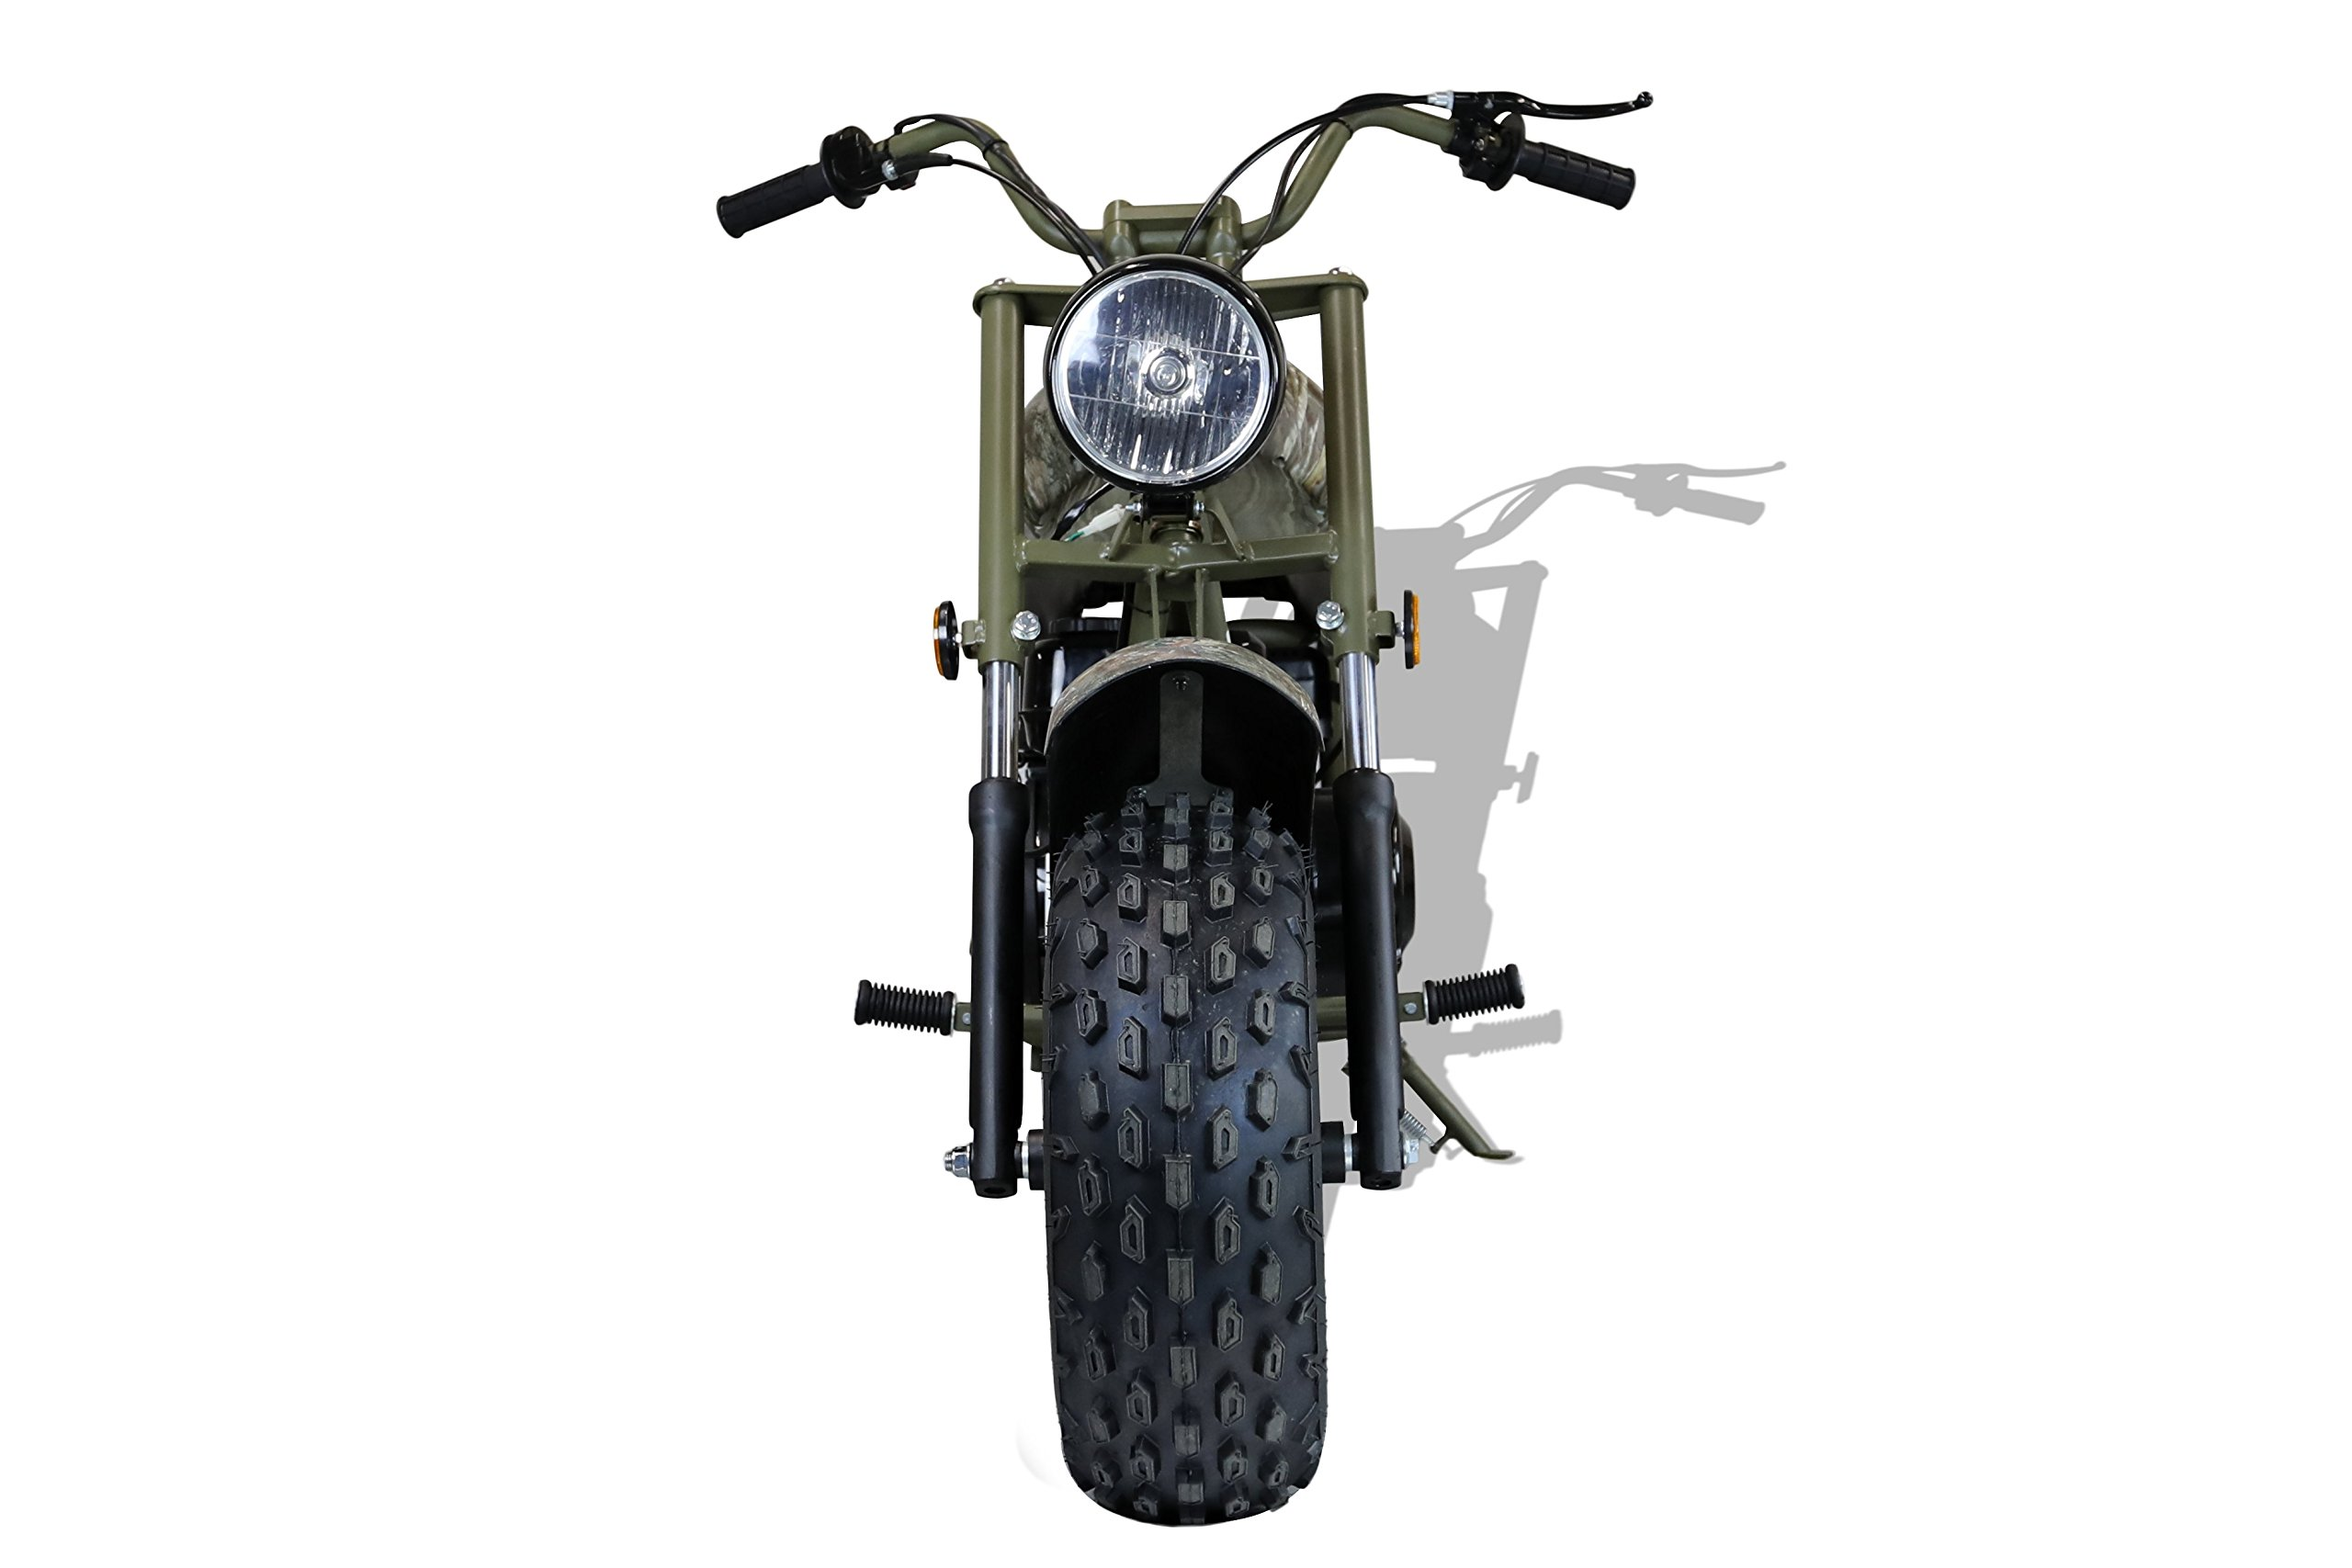 MASSIMO MB200 SUPERSIZED 196CC MINI BIKE - SHIPPING & WARRANTY INCLUDED! by M MASSIMO MOTOR (Image #7)